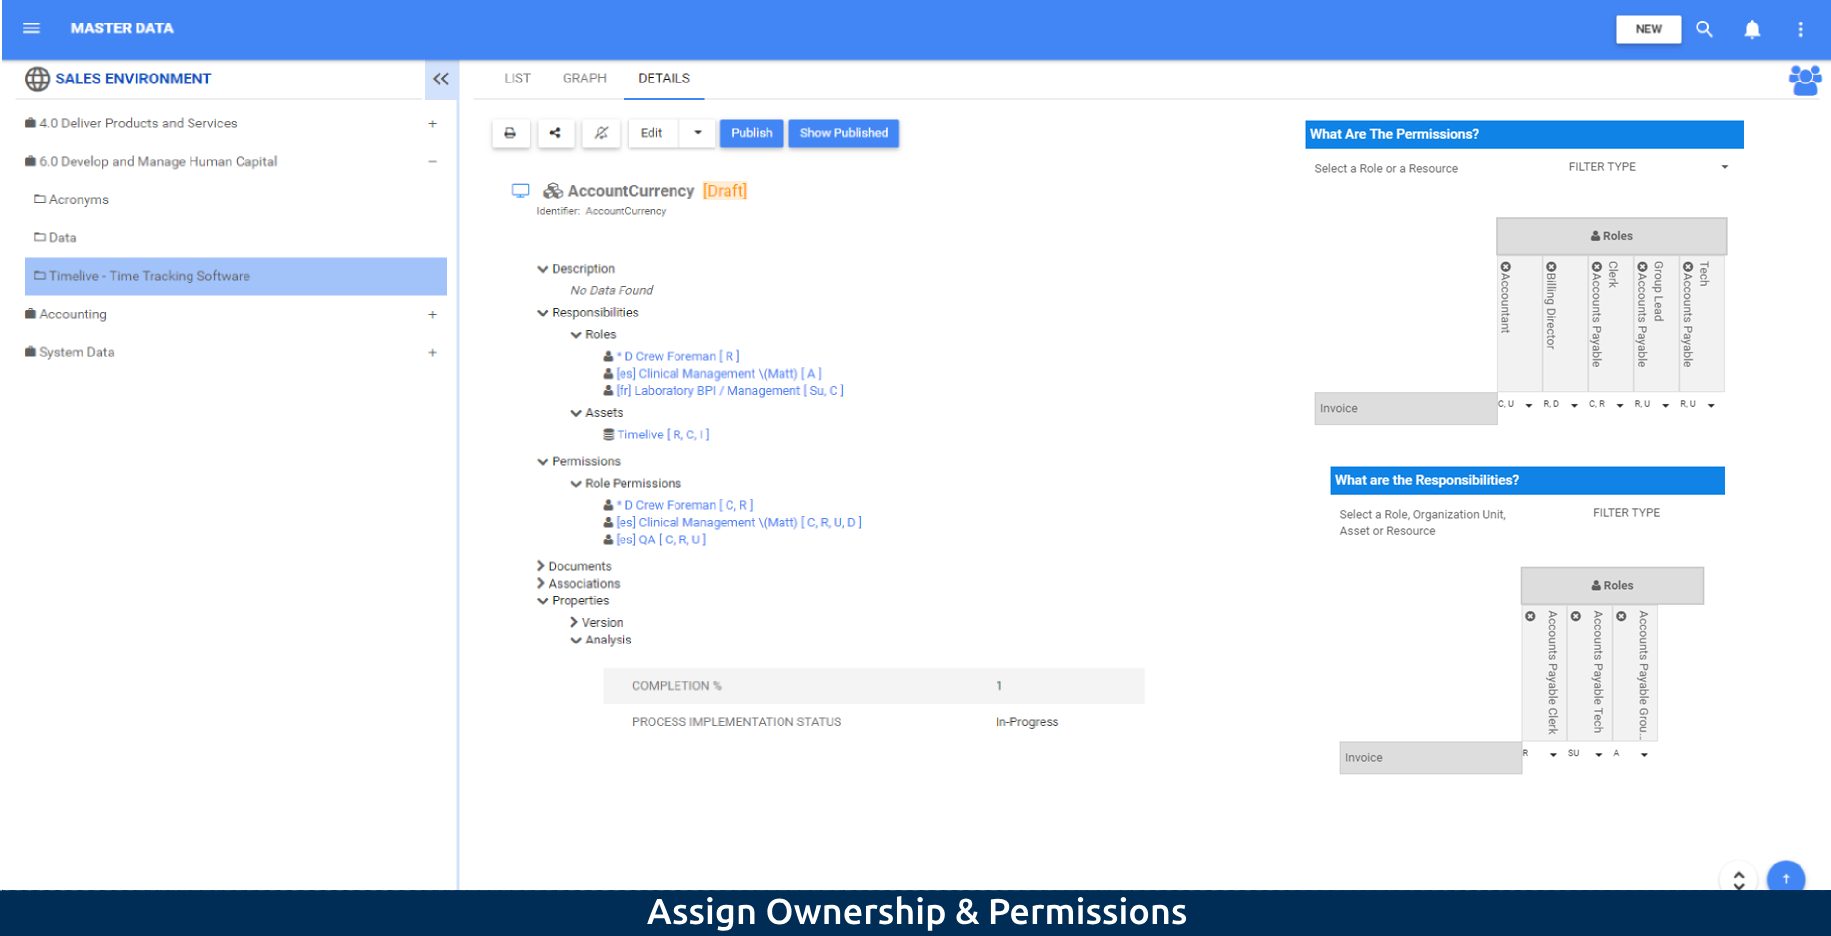 2-1 Assign Ownership & Permissions